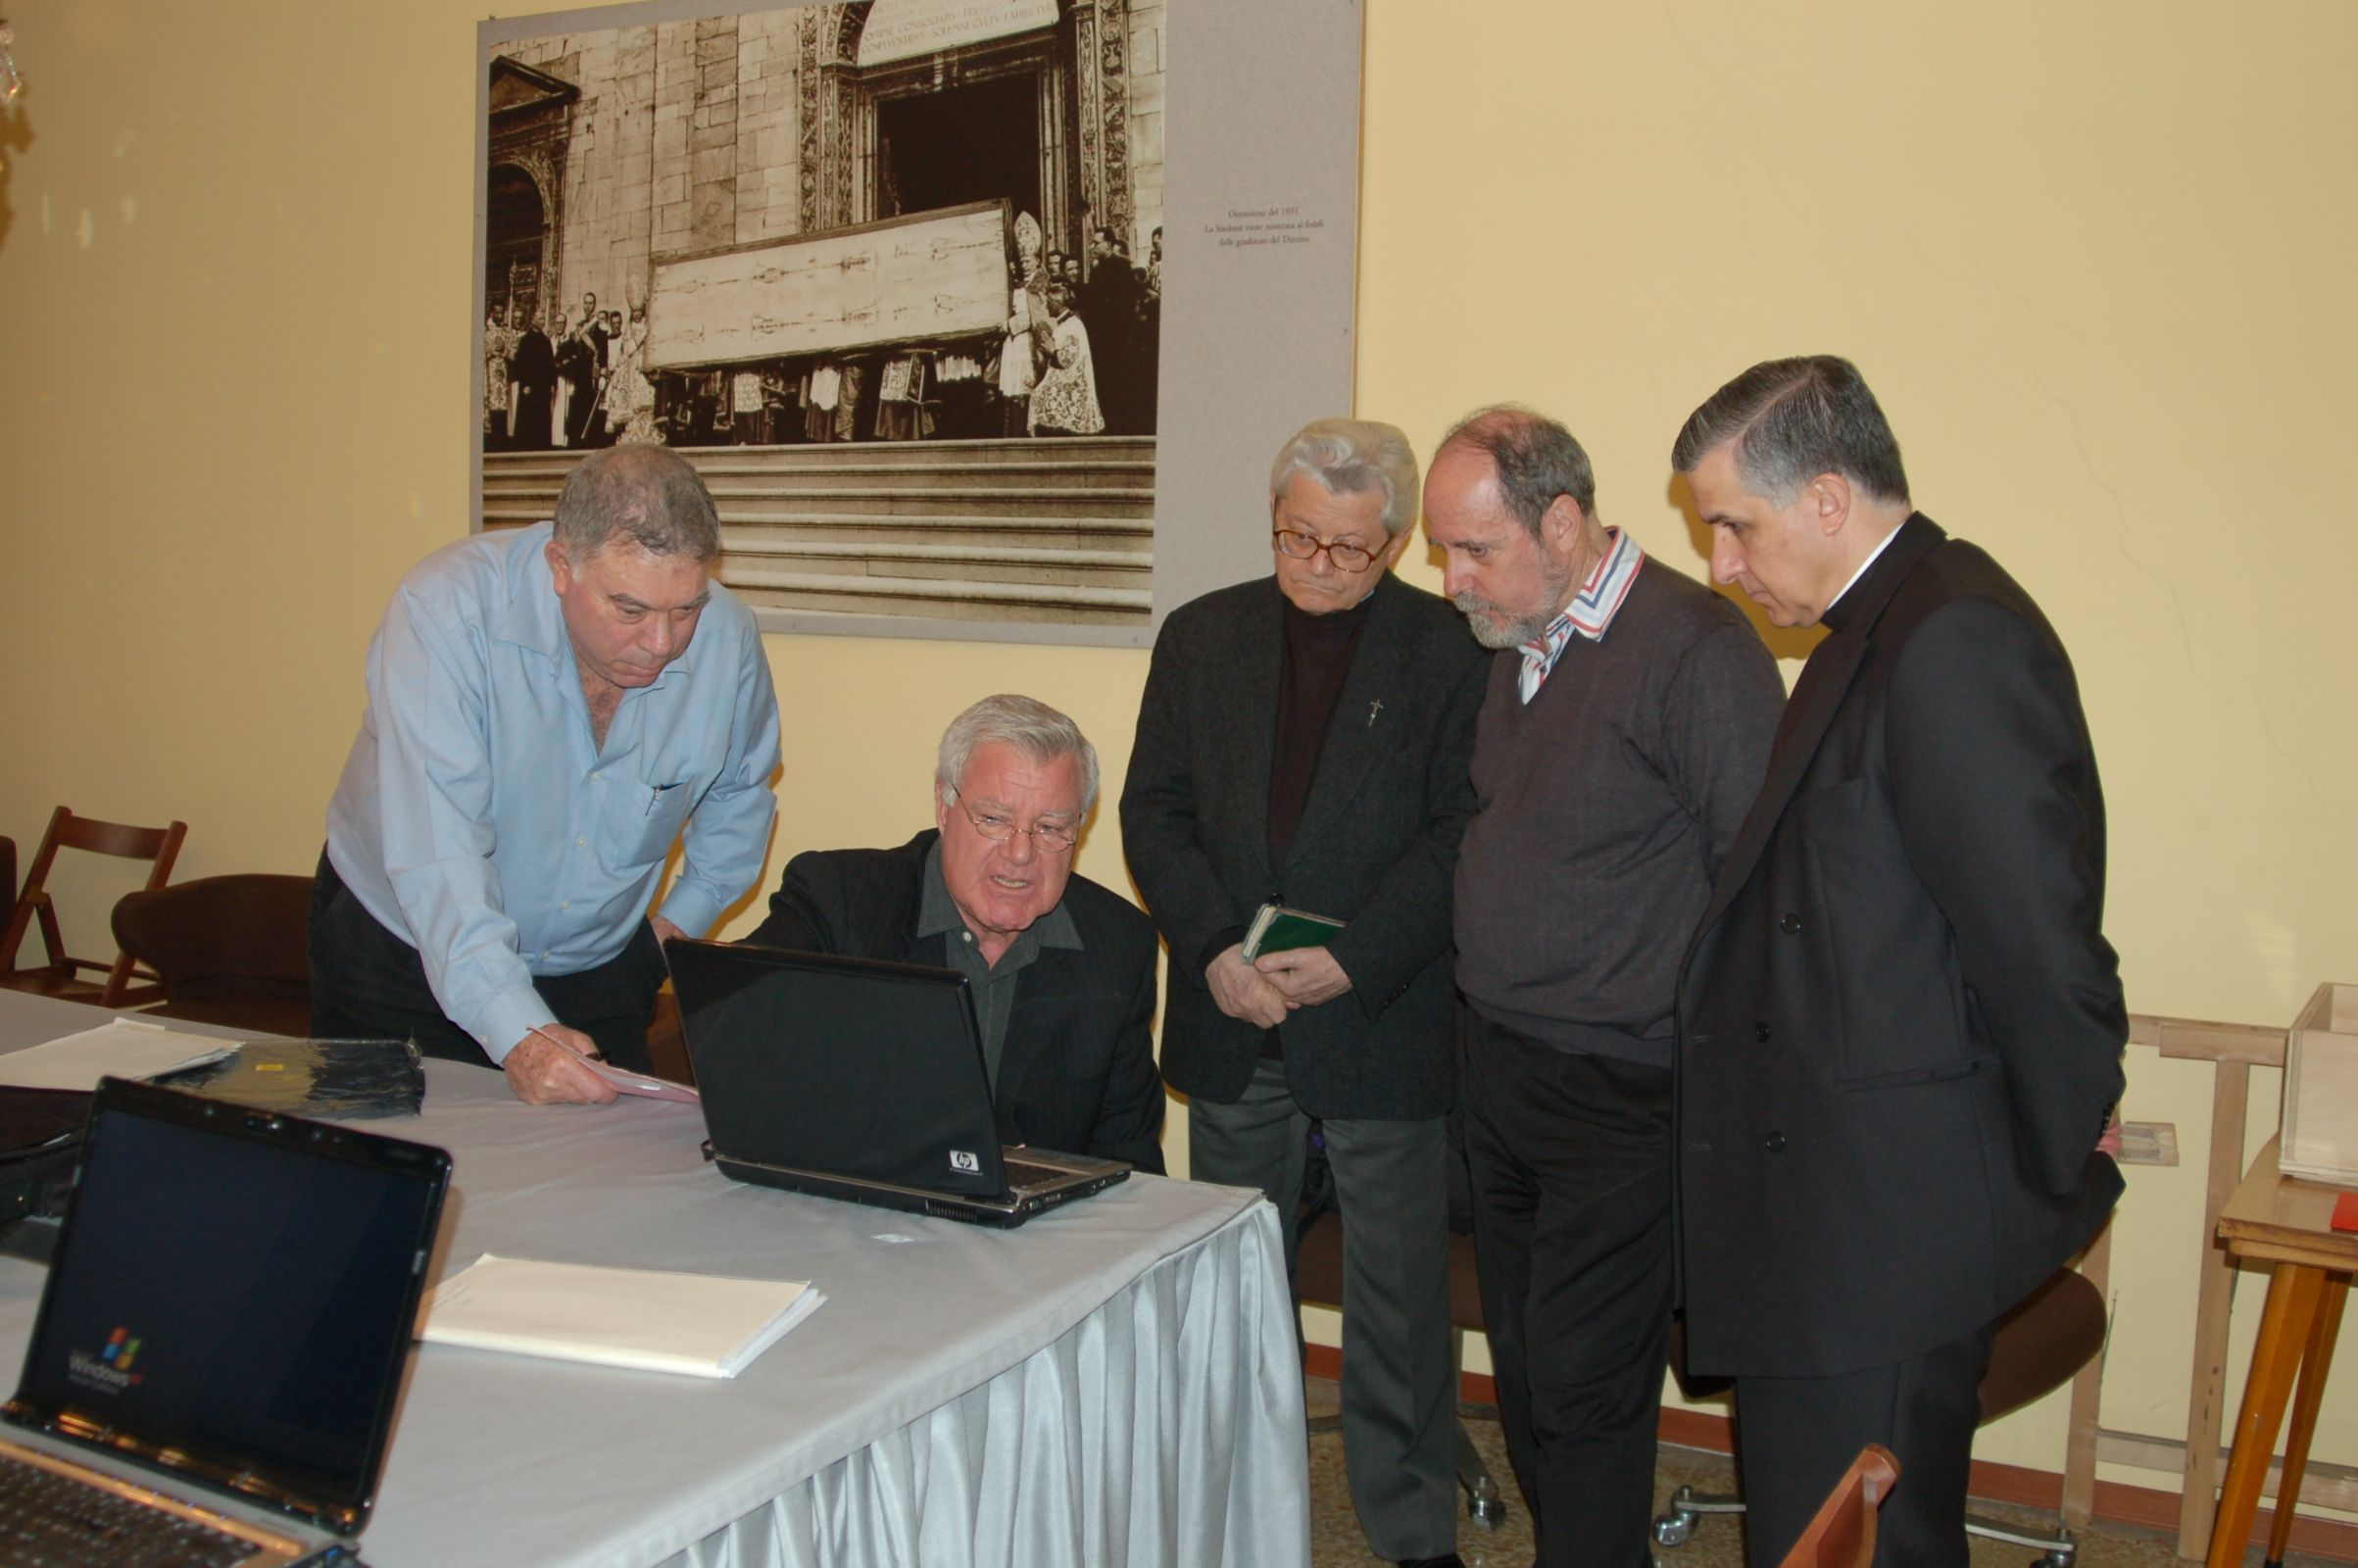 Photo 5. Visit Turin Danin, Dr. Soons, Don Ghiberti, Bruno Barberis and Father Guerra